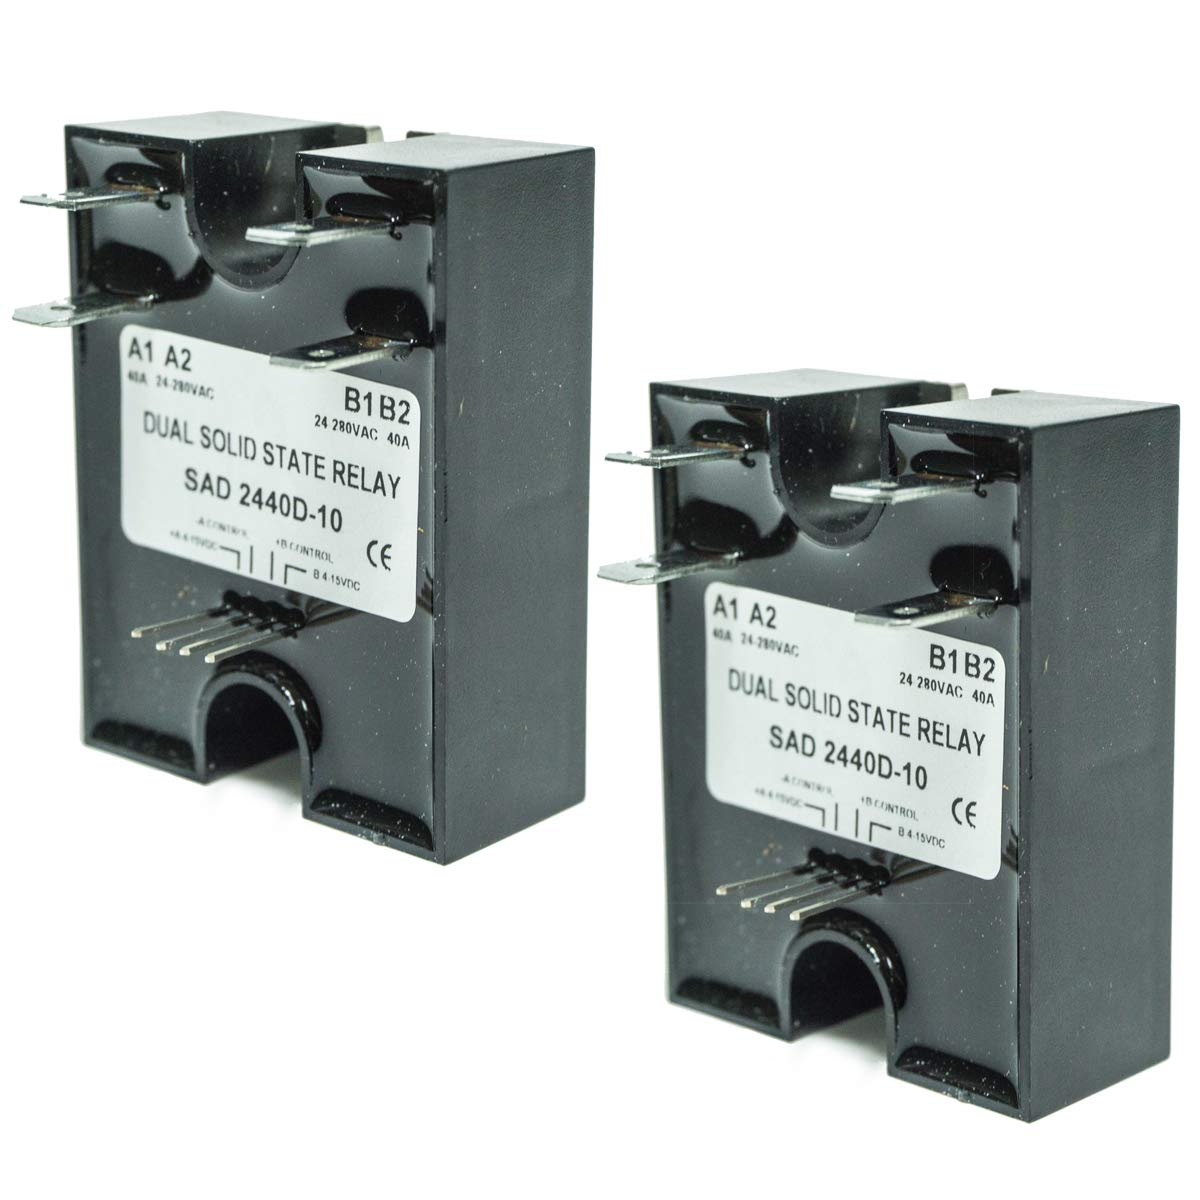 EPR 2PK Dual Solid-State Relay SSR 4-15VDC Input 280VAC 40A D2440D-10 Random Turn On by EPR